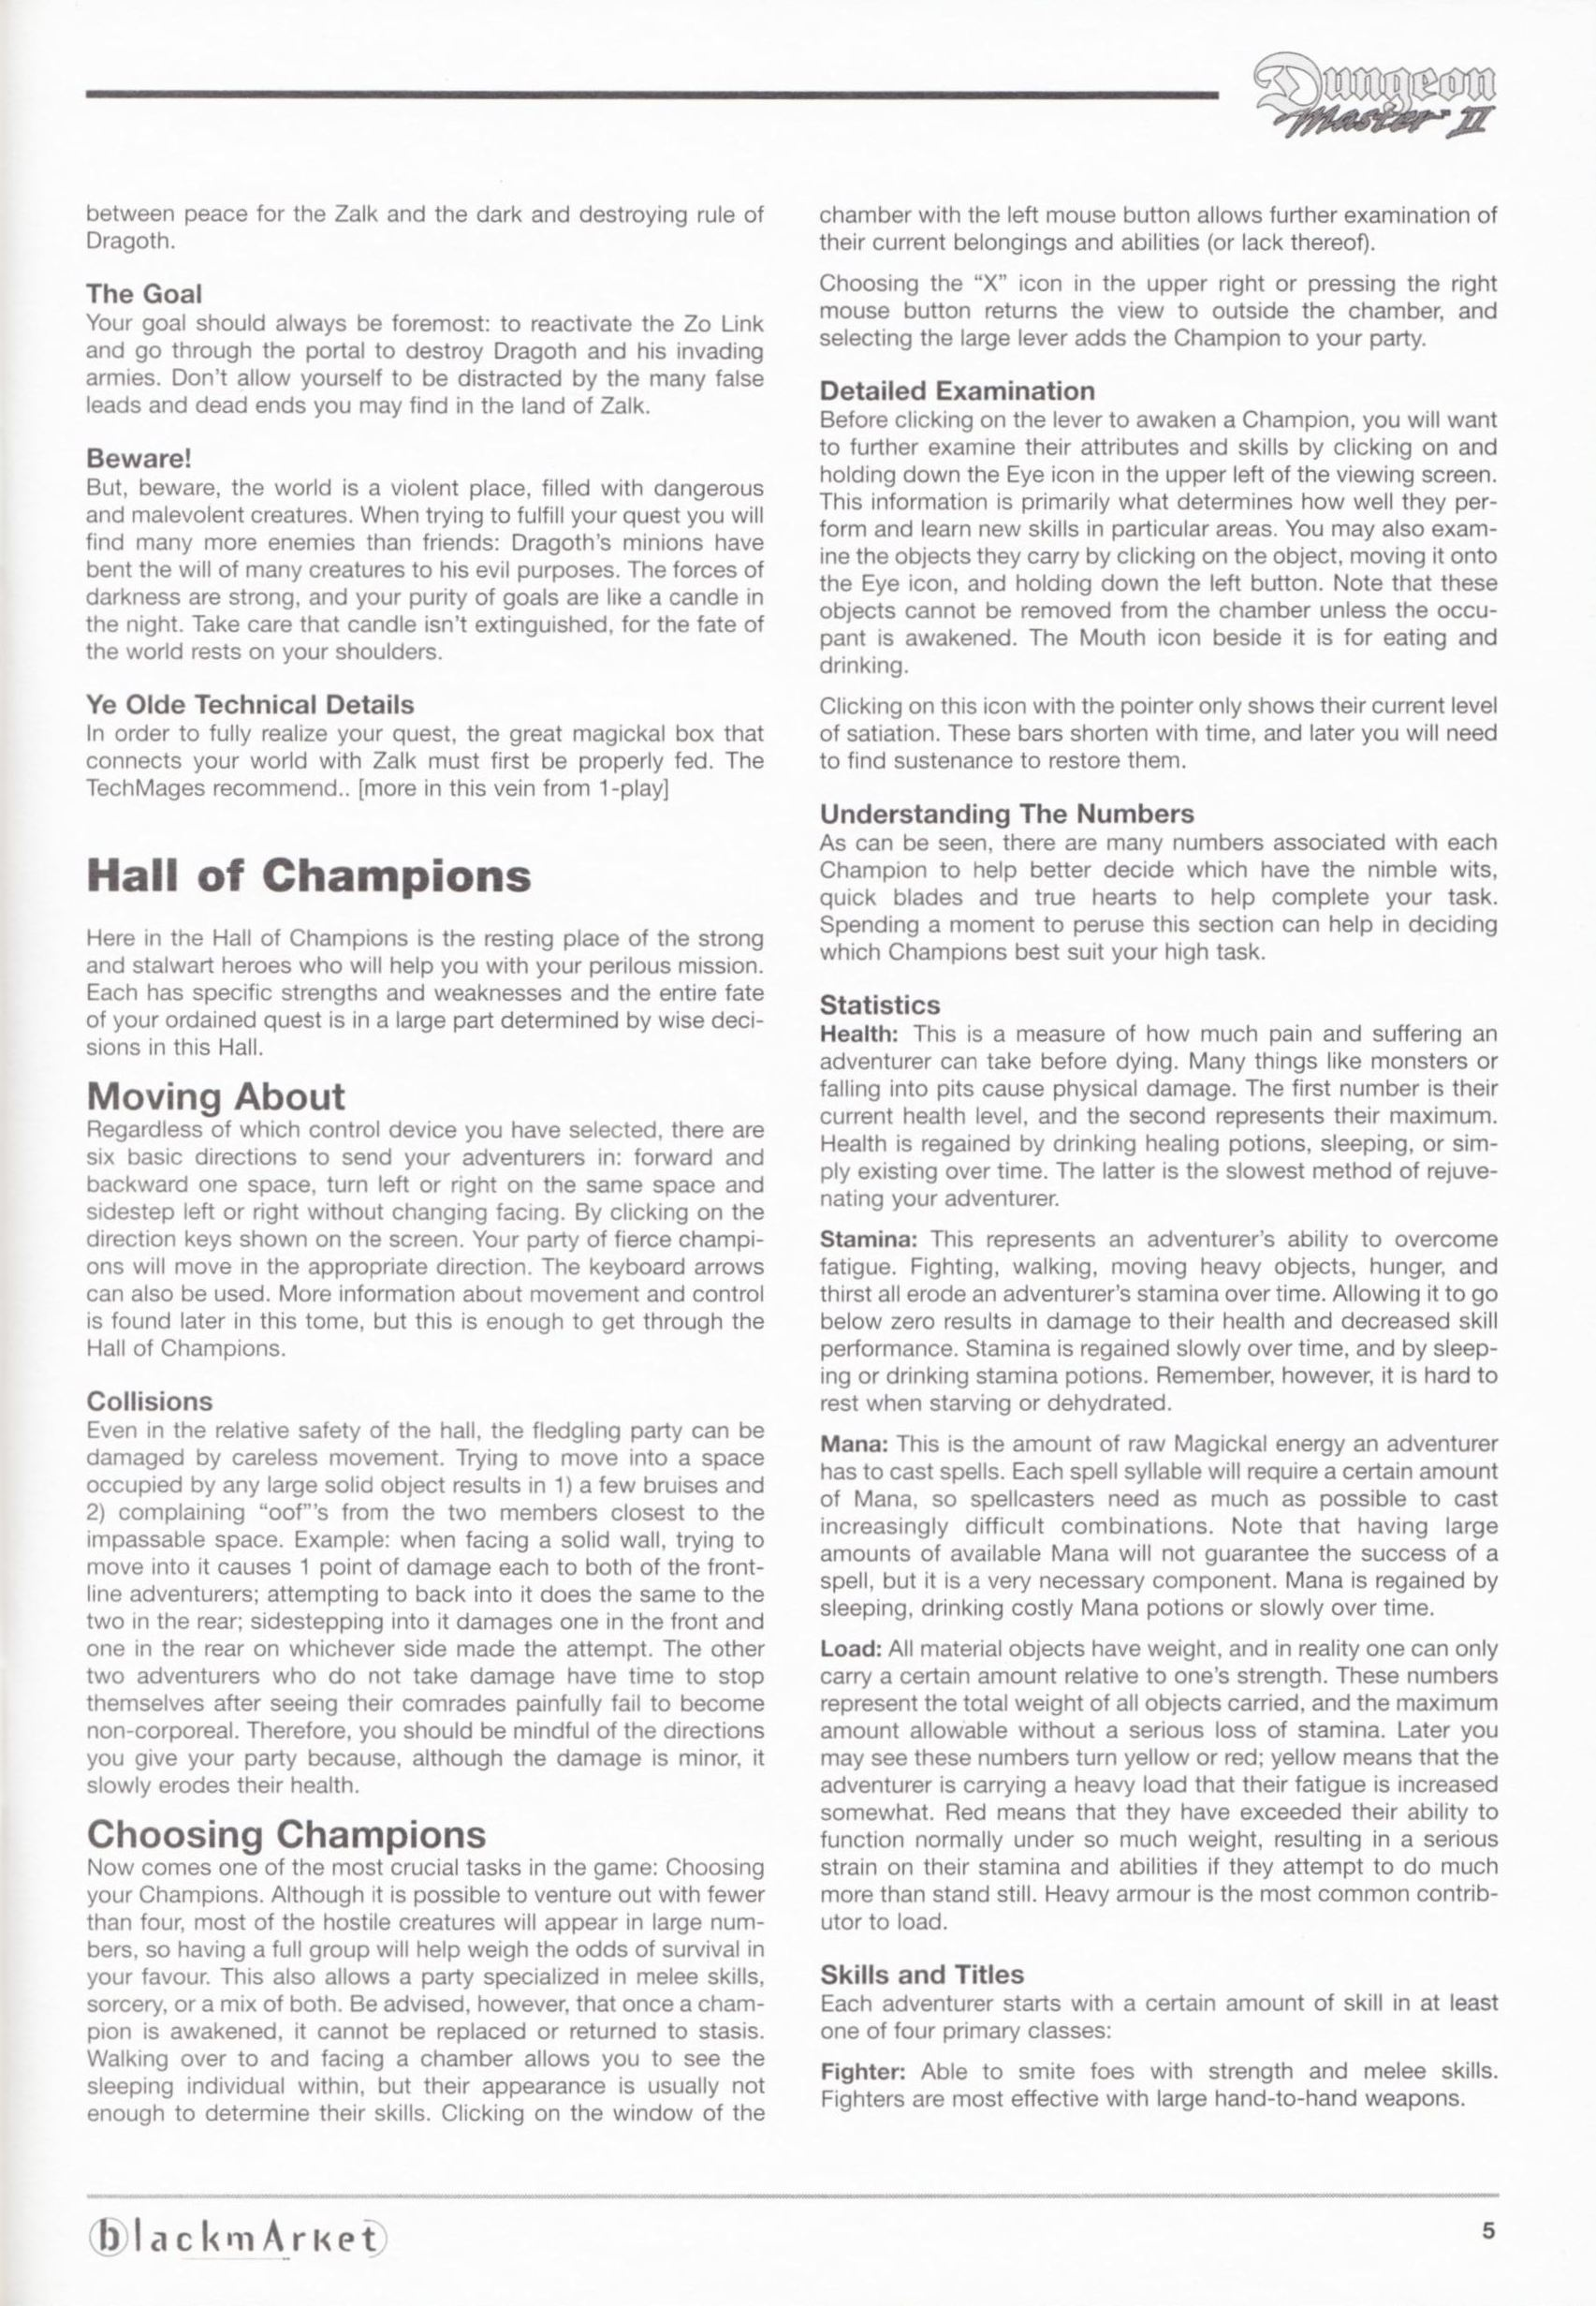 Game - Dungeon Master II - DE - PC - Blackmarket With Manual - Manual - Page 007 - Scan